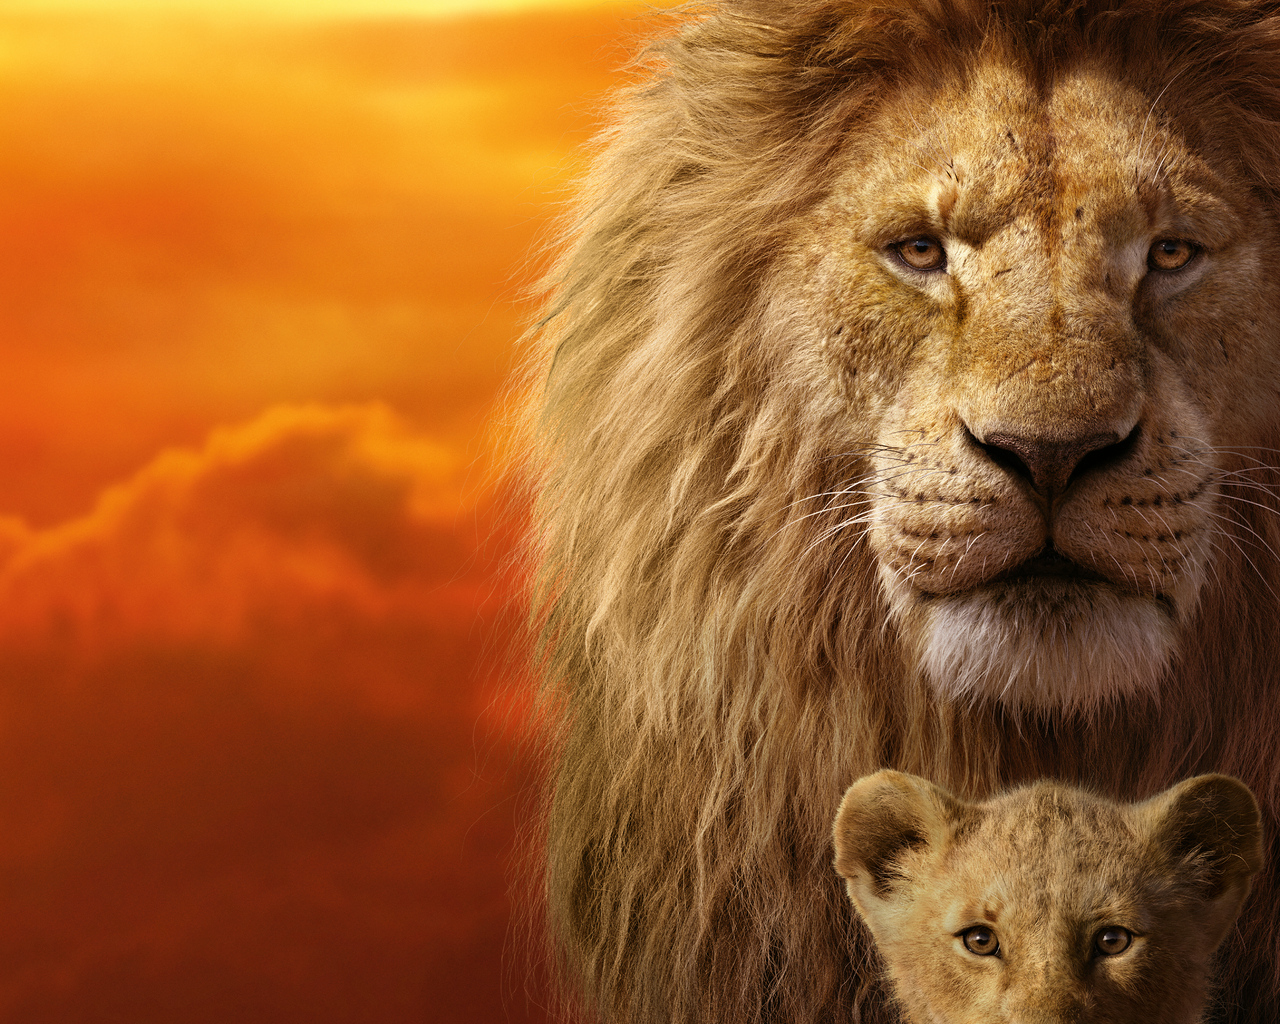 the-lion-king-8k-rl.jpg